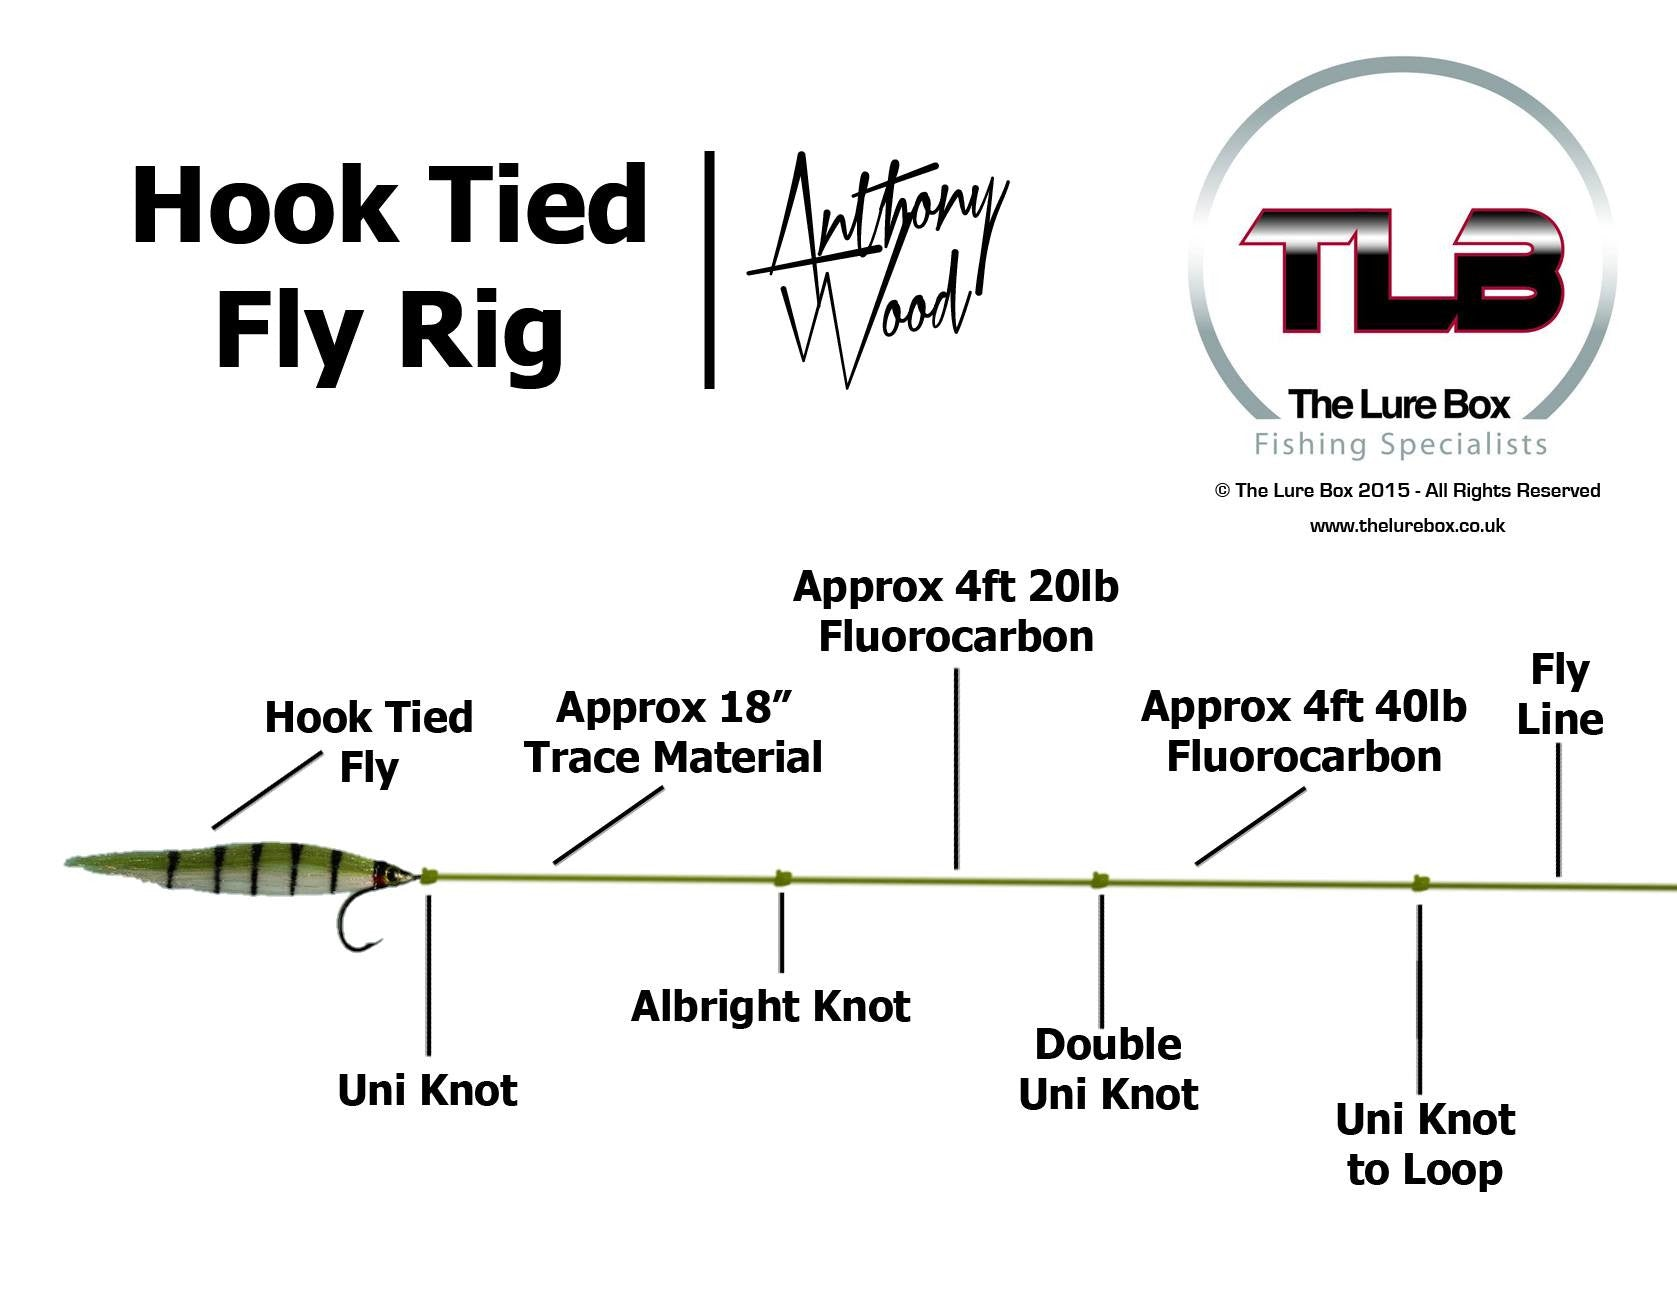 Hook Tied Fly Rig Diagram - The Lure Box